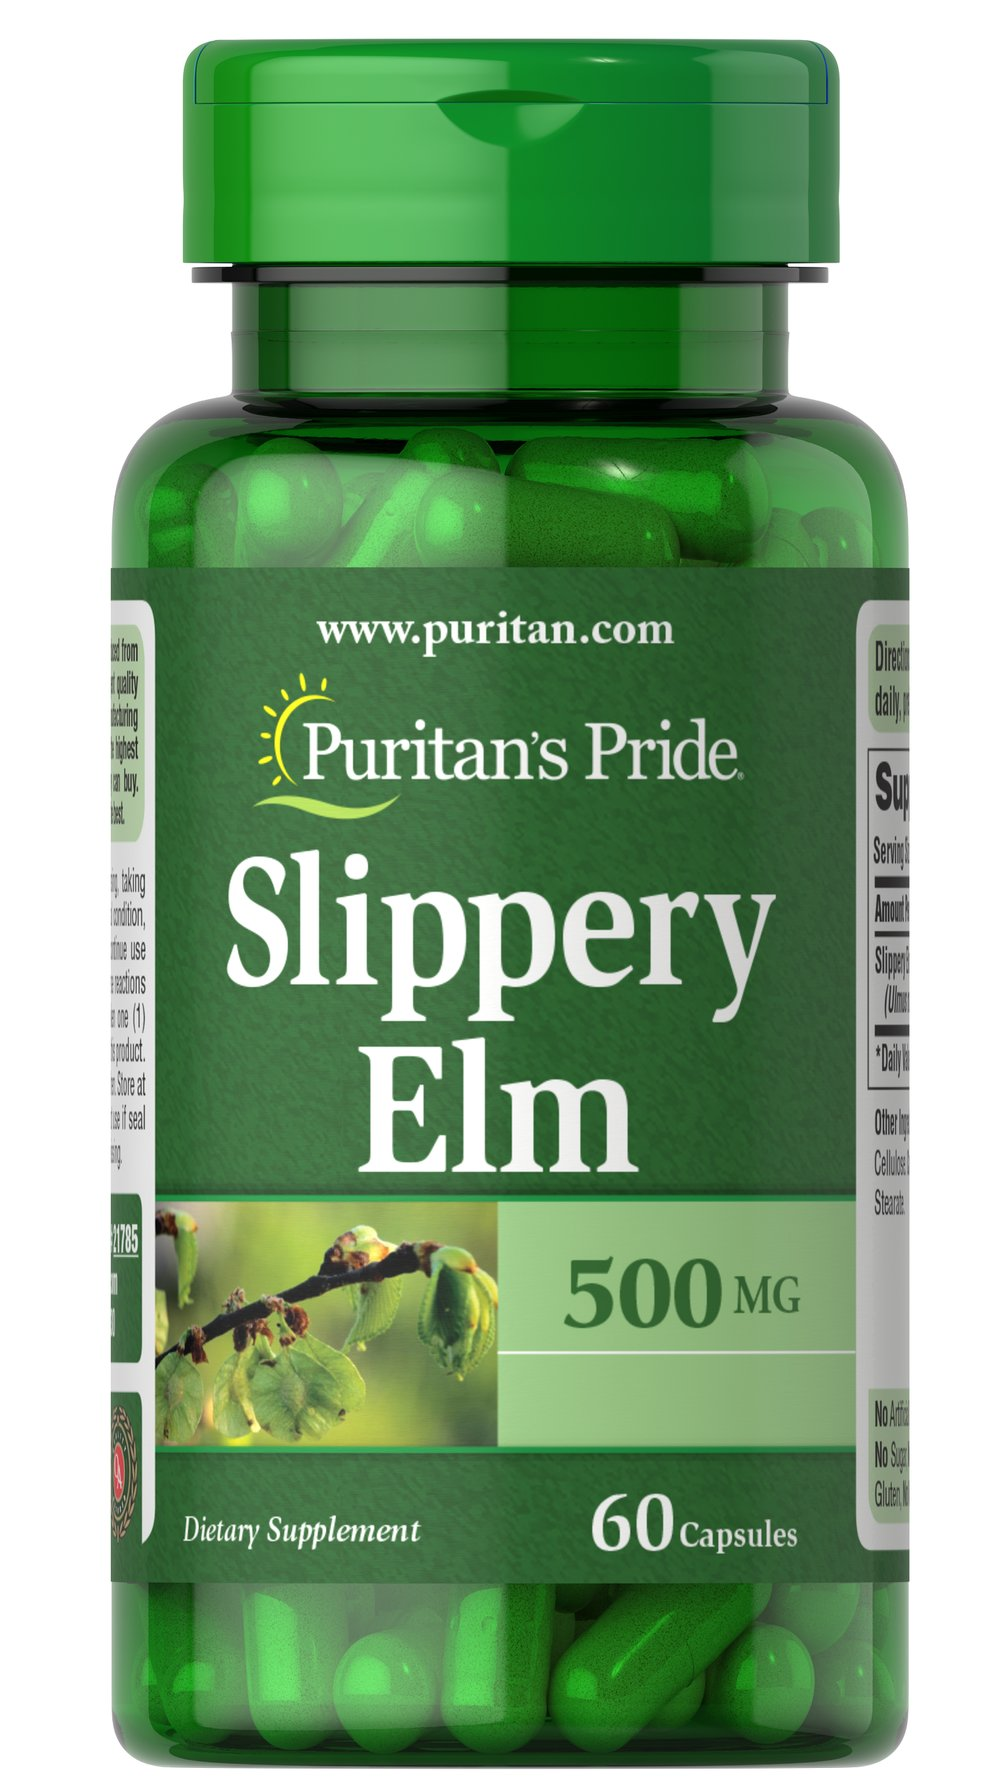 Slippery Elm 500mg